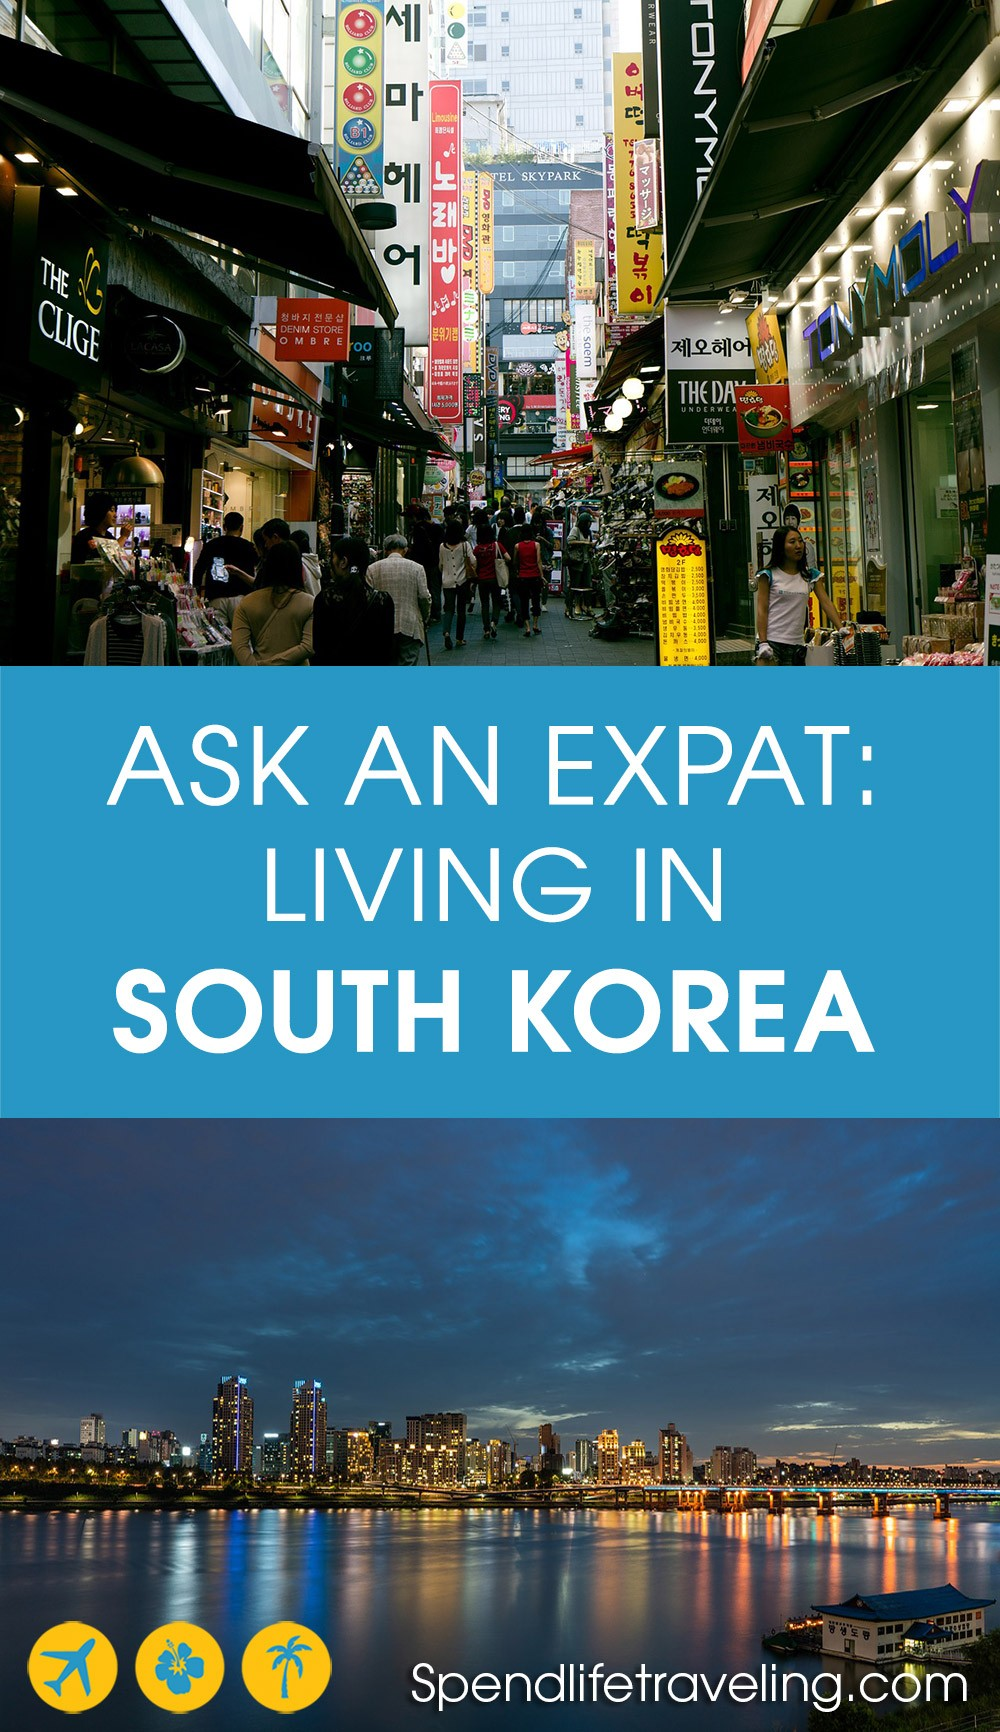 Interview with an expat about what it's like to move to and live in South Korea. #expat #southkorea #moveabroad